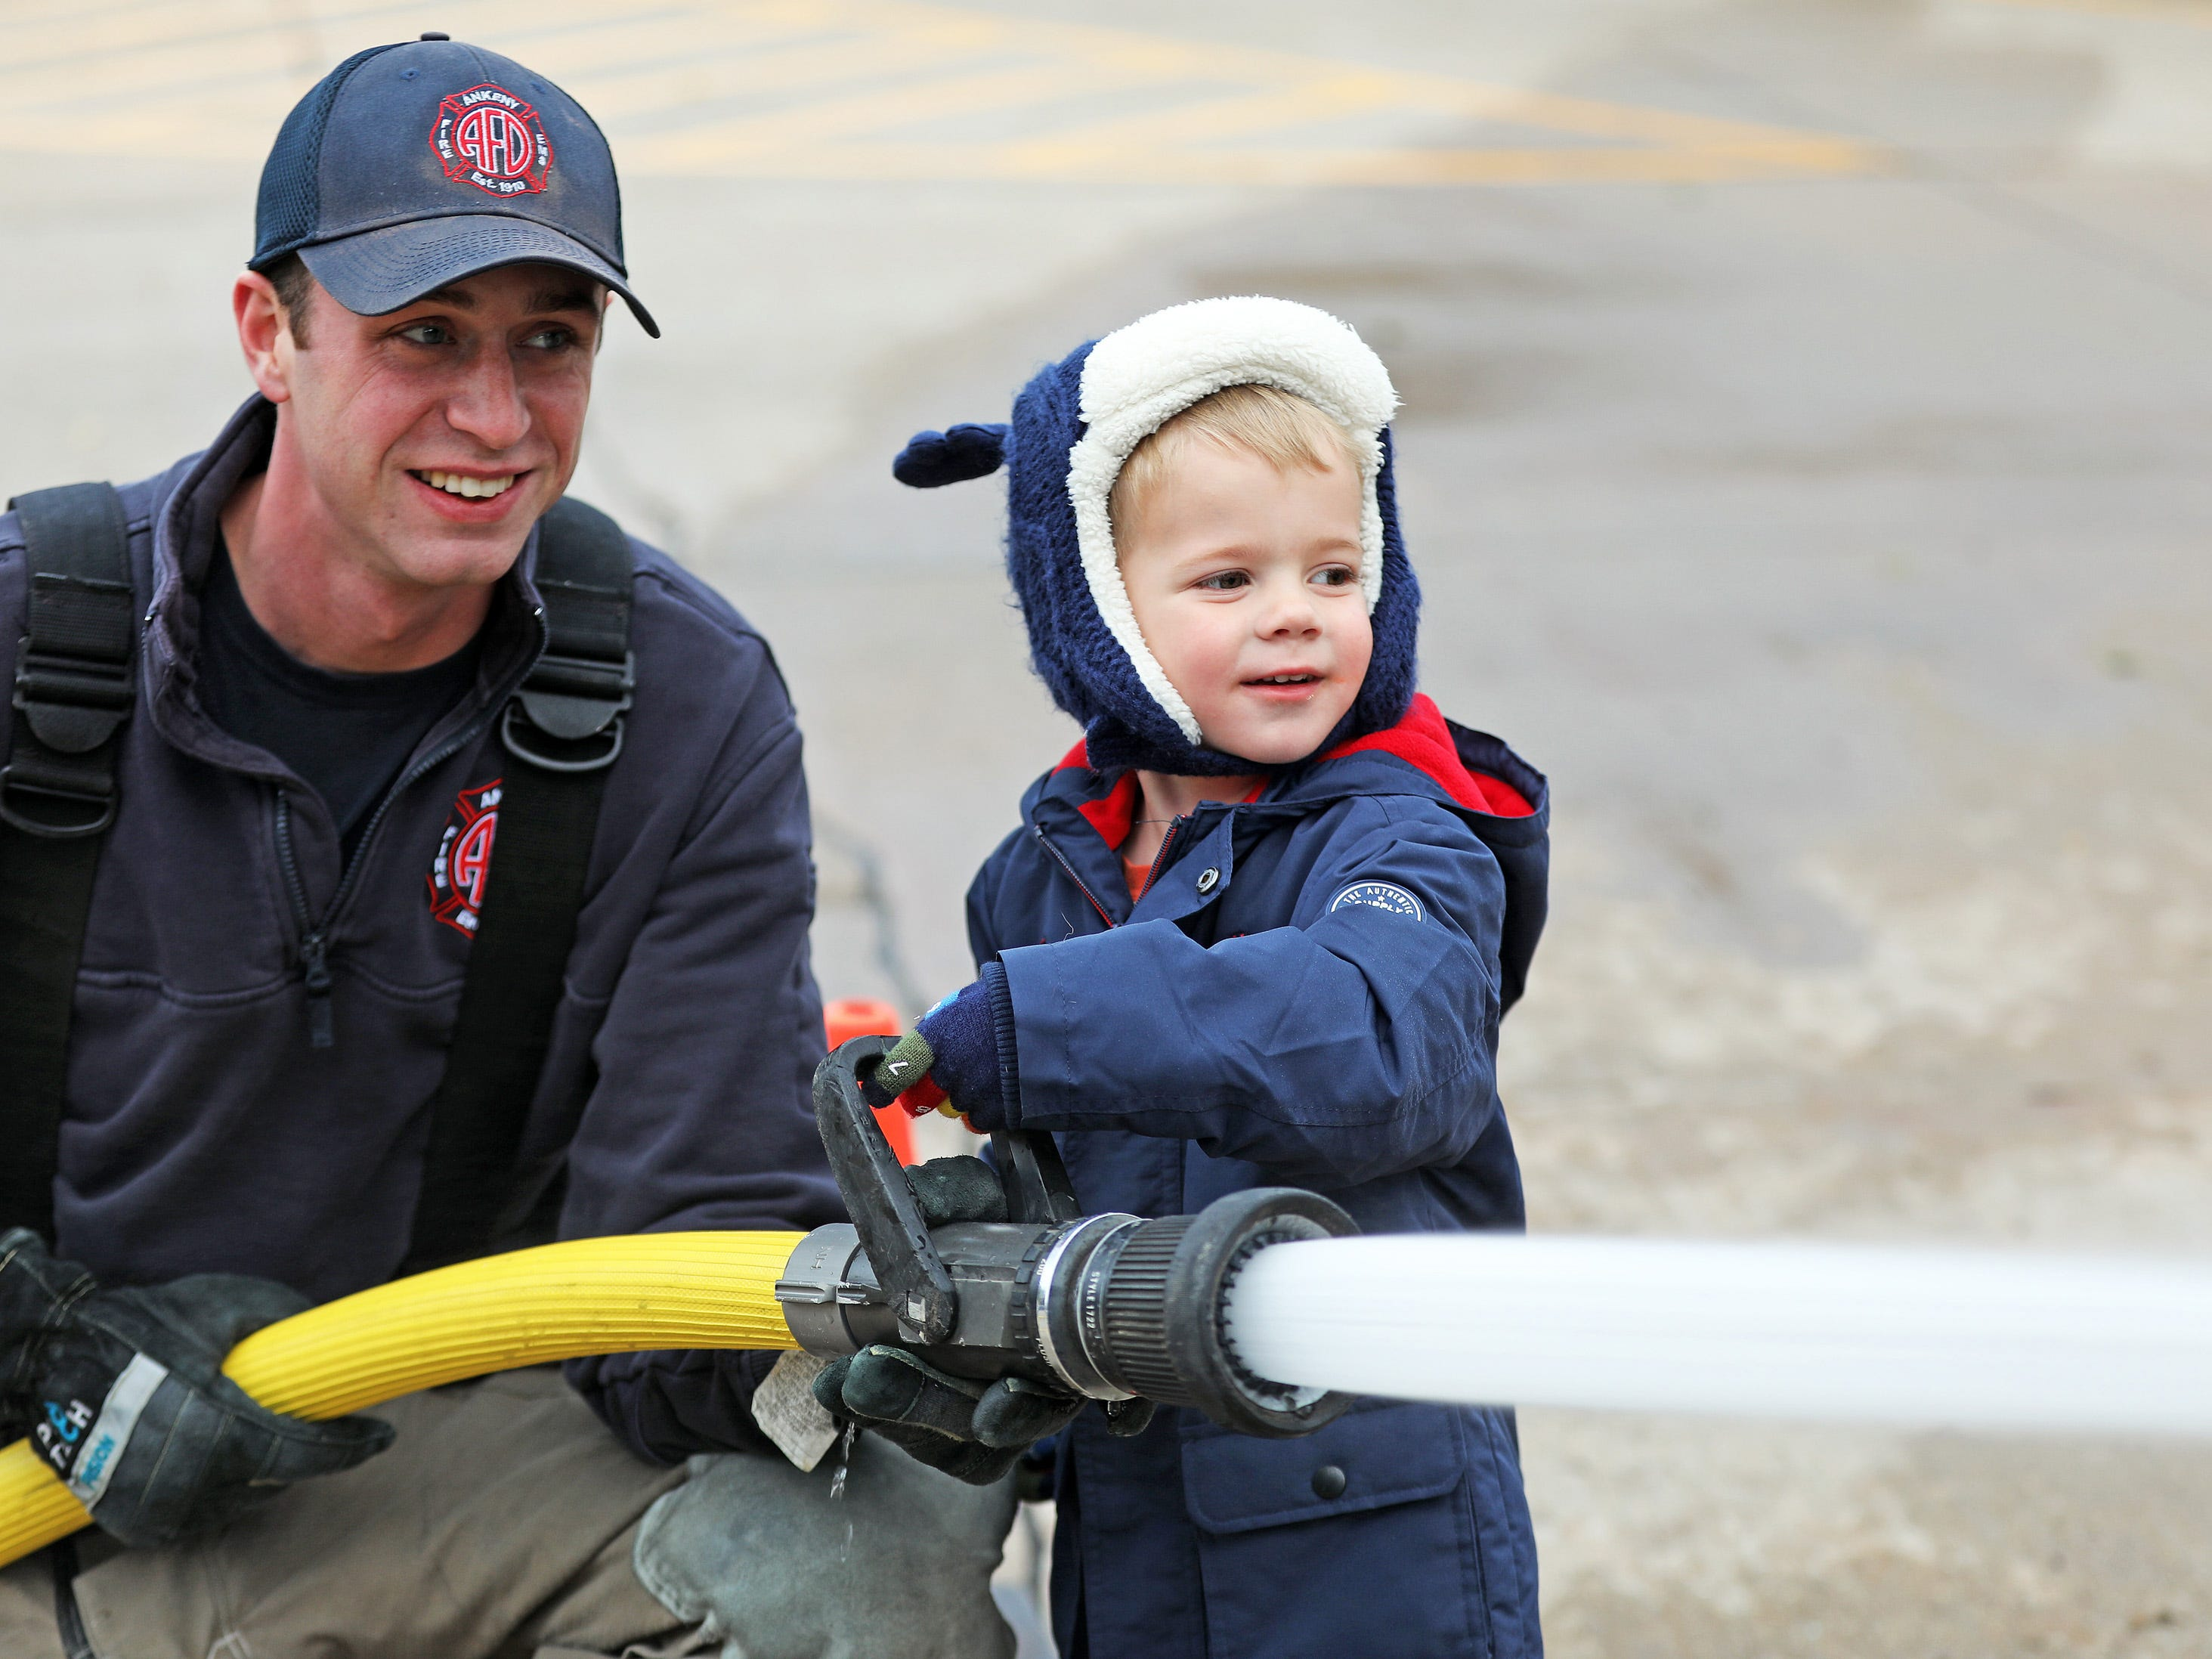 James Schleicher, 3, of Ankeny learns how to spray water on the target from Ankeny Firefighter Cole White during the Ankeny Fire Department's Fire Prevention Week Open House on Wednesday, Oct. 10, 2018 at Fire Station #1, 120 N.W. Ash Dr in Ankeny.